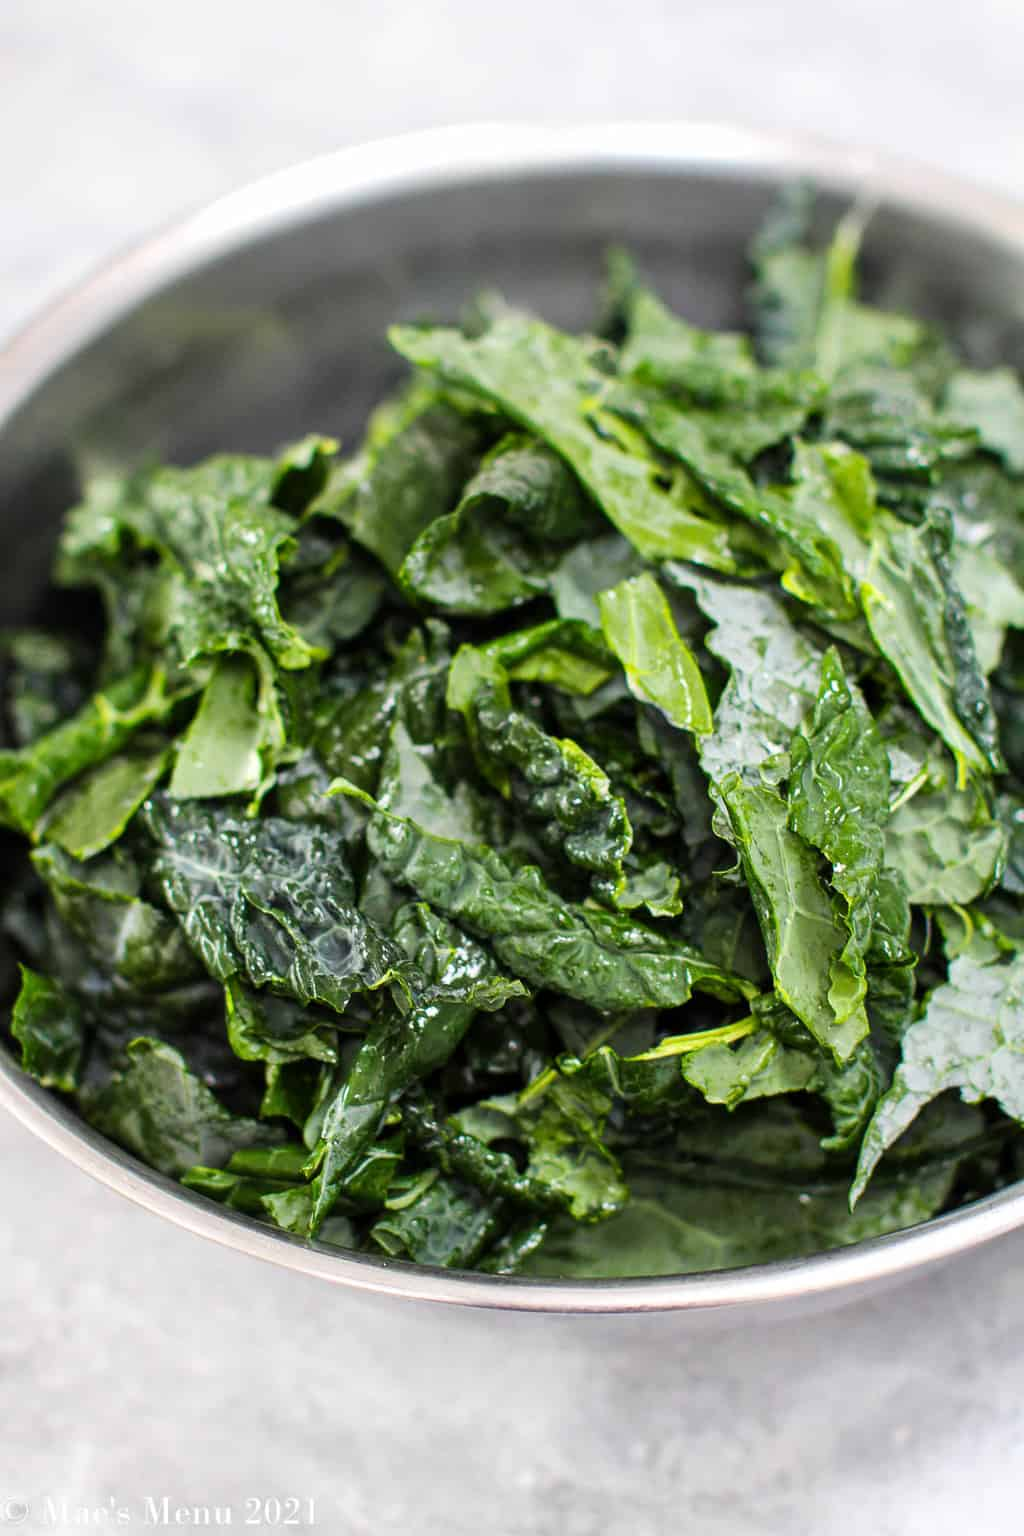 Pieces of kale in a large metal bowl